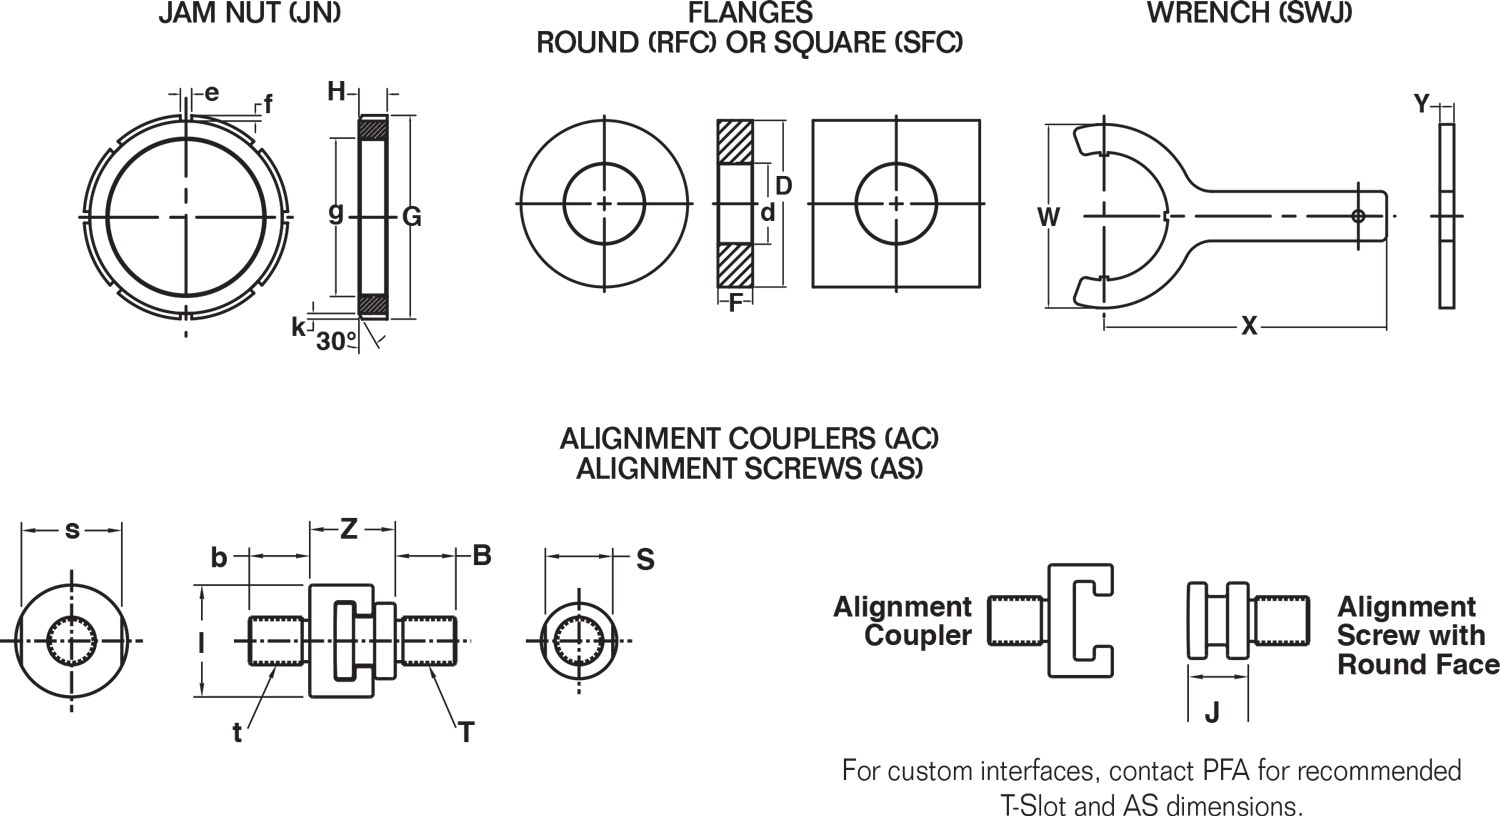 kor-lok-jam-nut-wrench-flanges-couplers-drawings